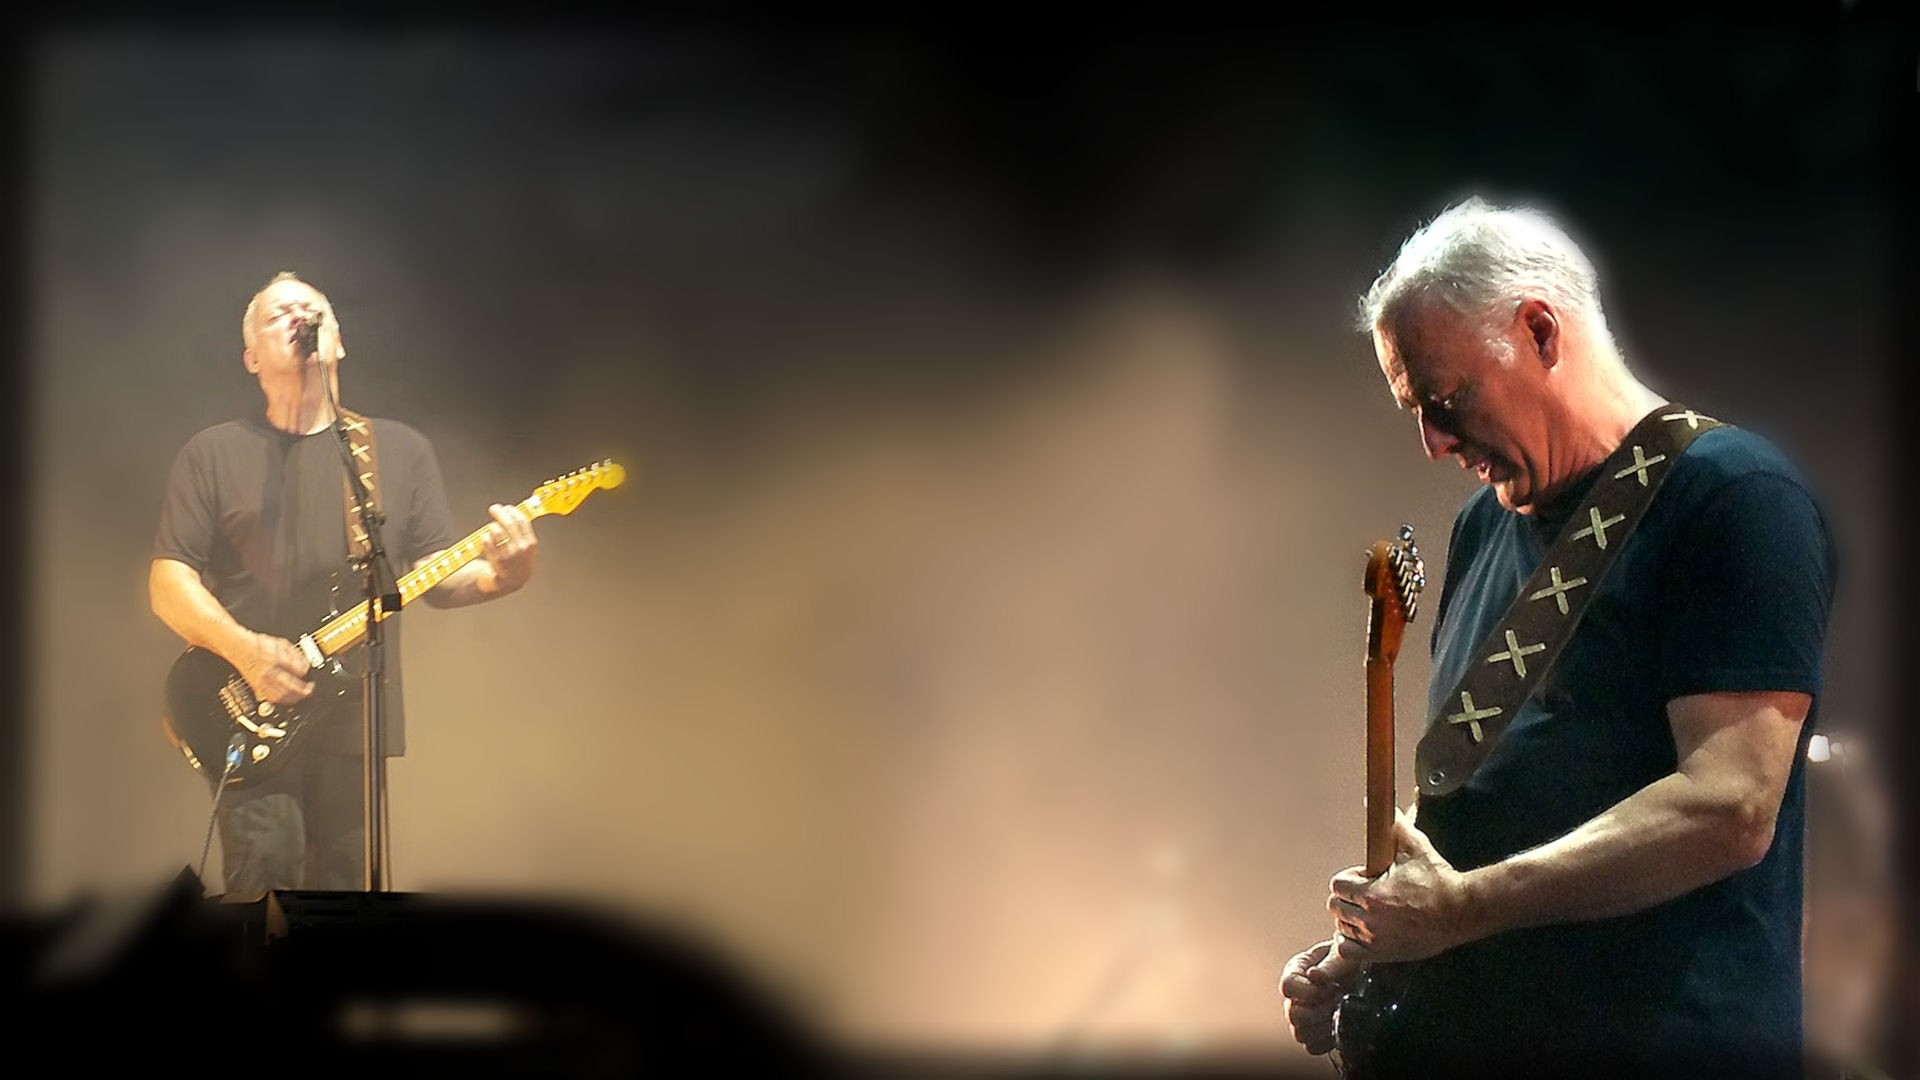 Full HD 1080p David gilmour Wallpapers HD, Desktop Backgrounds · David  GilmourPink FloydHd …